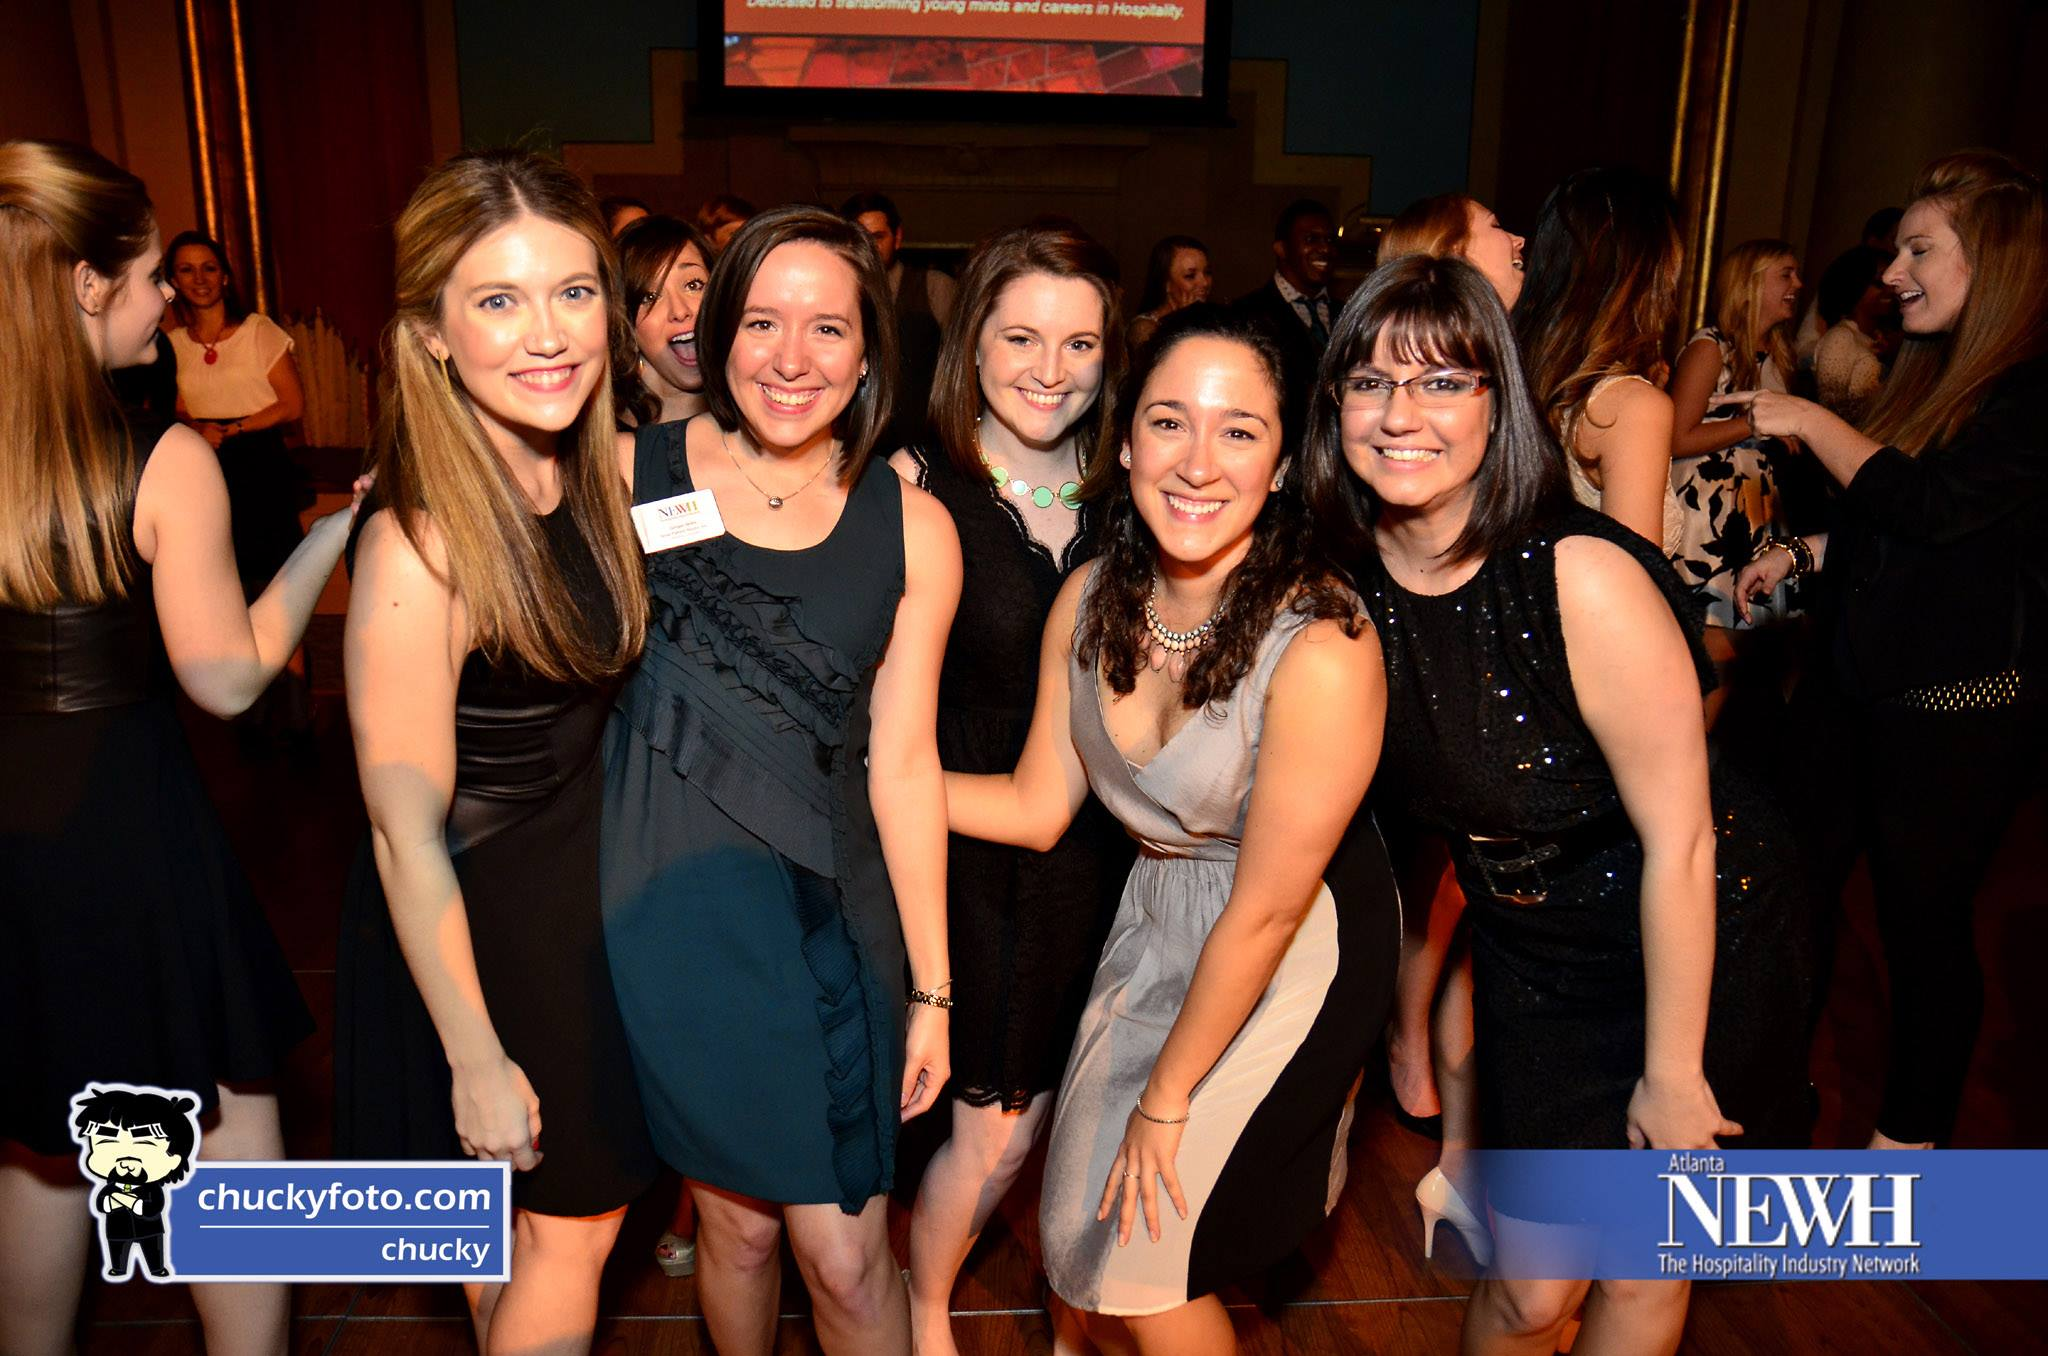 Gina Filipelli, Ginger Willis, Kendal Rogers, Jessica Ybarra, & Natalia Panagopoulos at the Scholarship Gala 2014